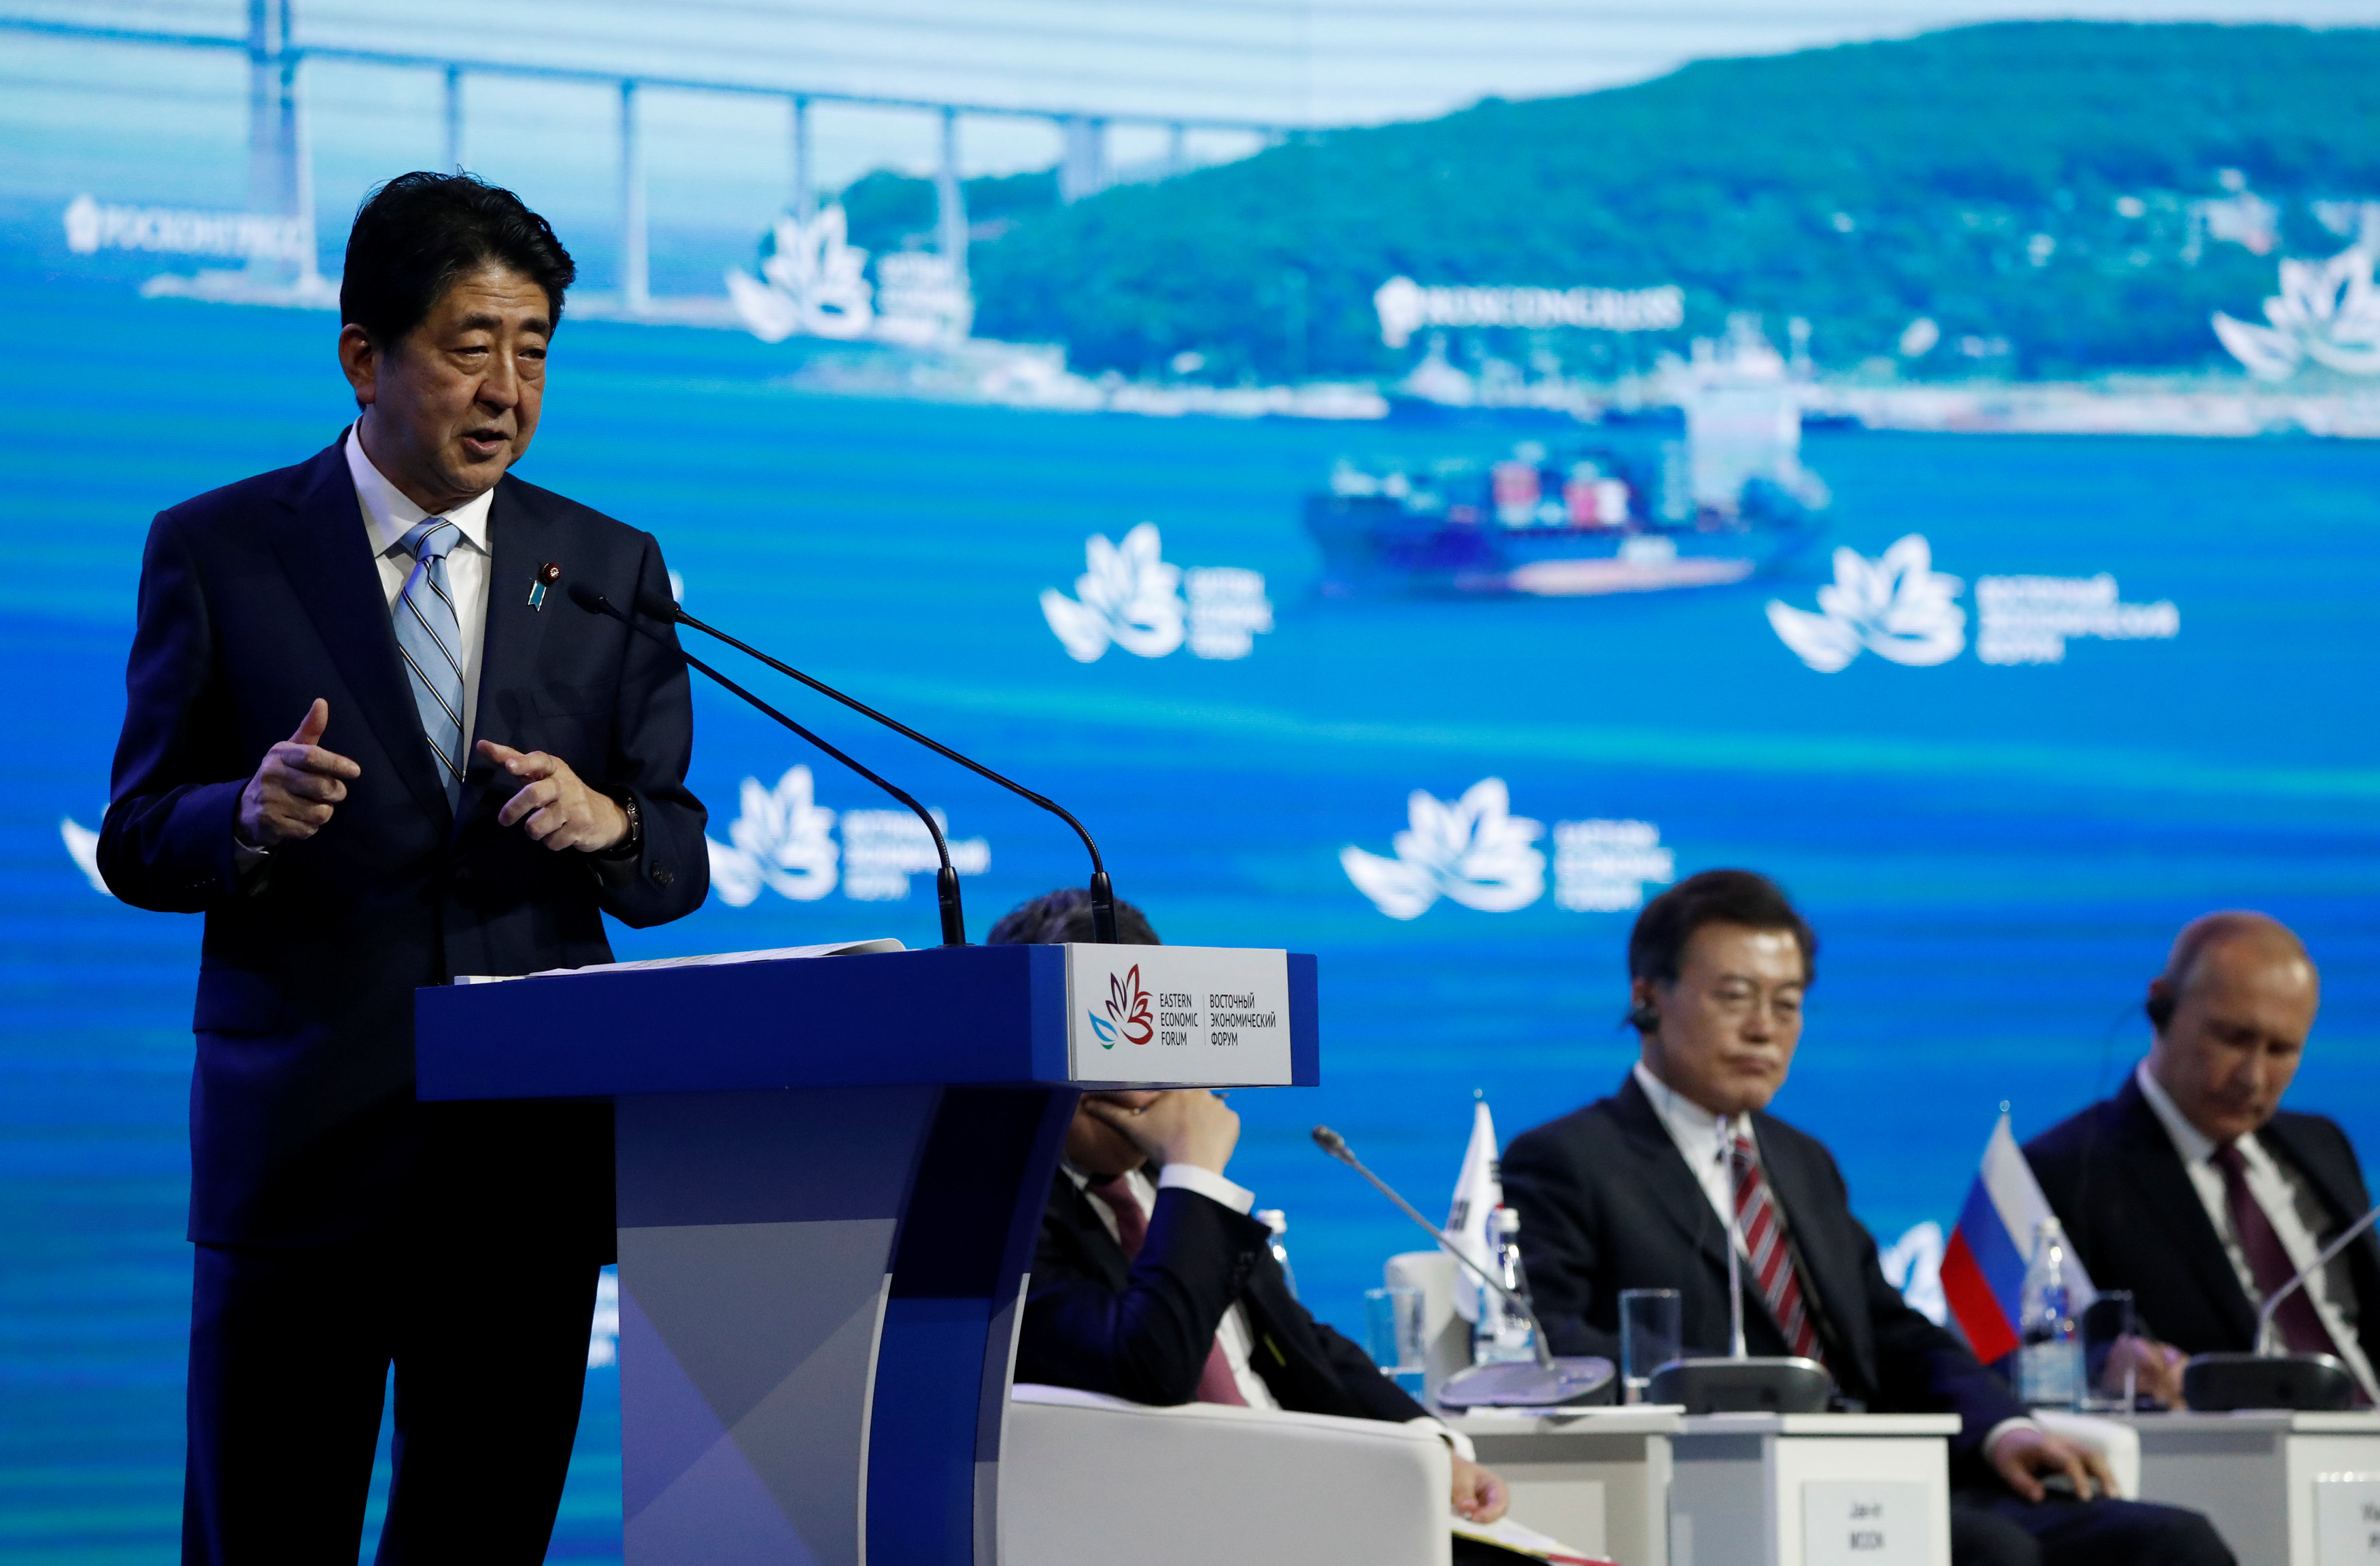 Japanese Prime Minister Shinzo Abe delivers a speech during a session of the Eastern Economic Forum in Vladivostok, Russia on Sept. 7, 2017. (REUTERS/Sergei Karpukhin)